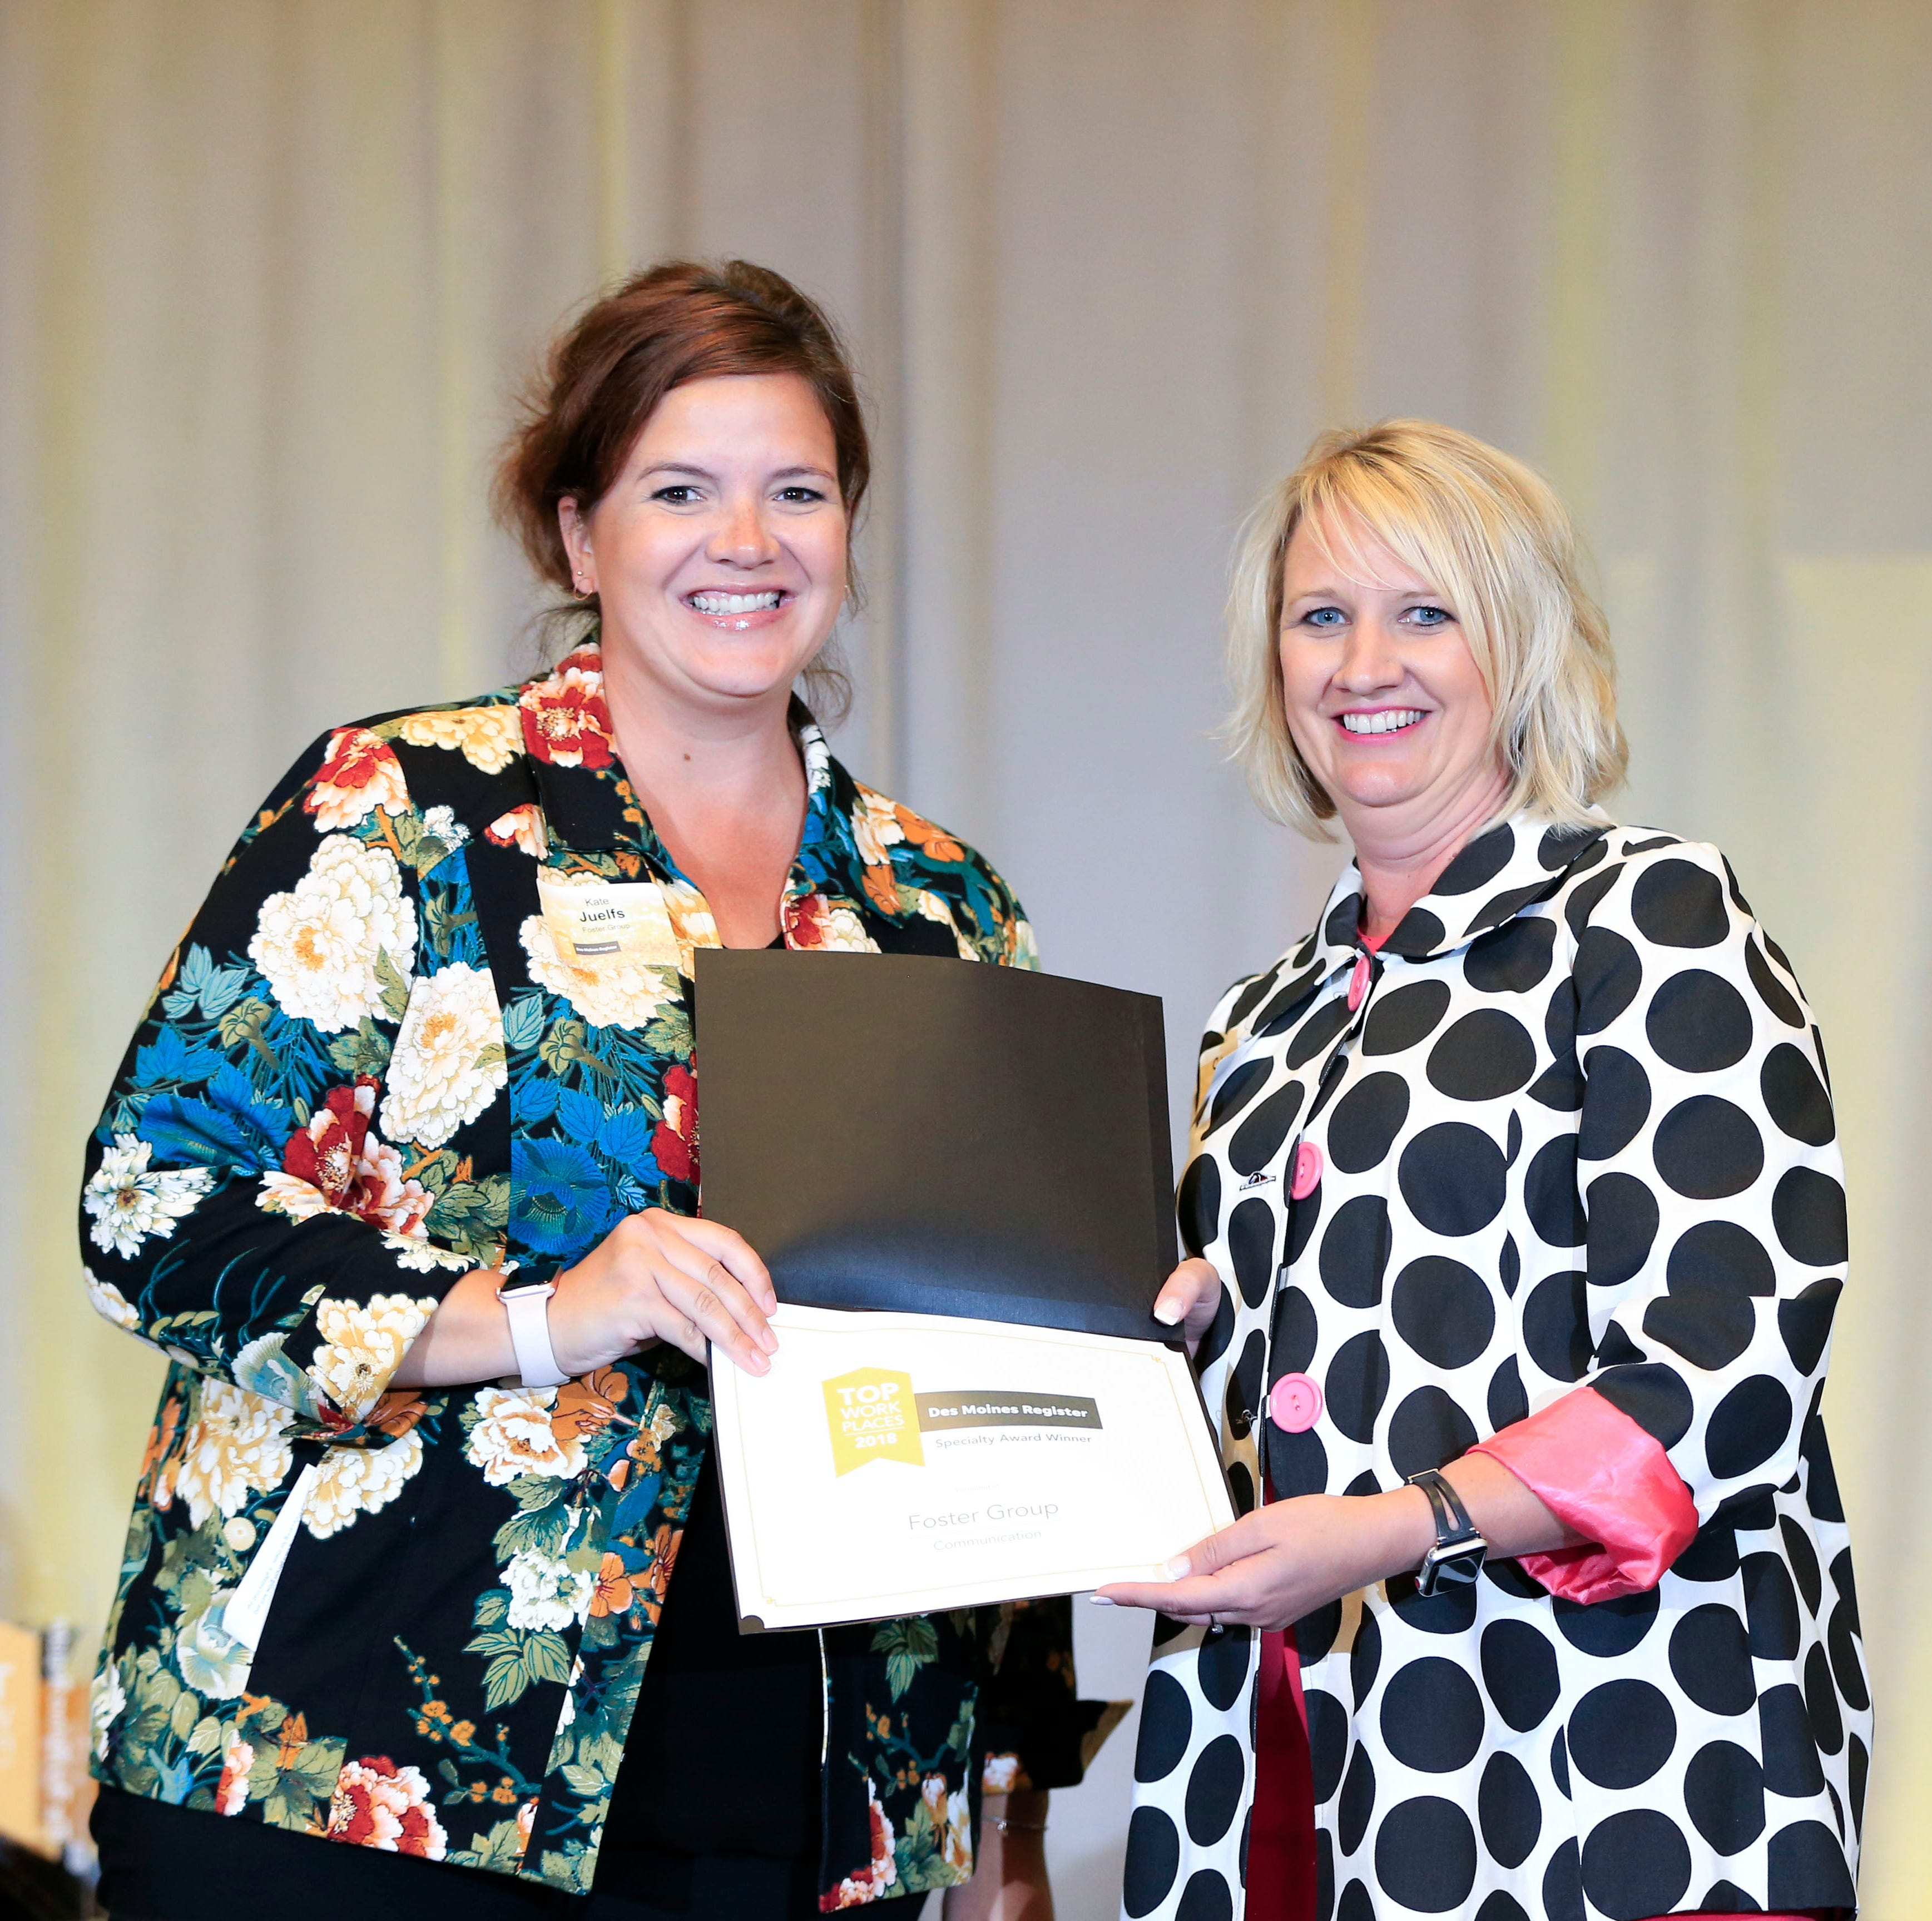 Top Workplaces: Iowa employees honor leaders, managers